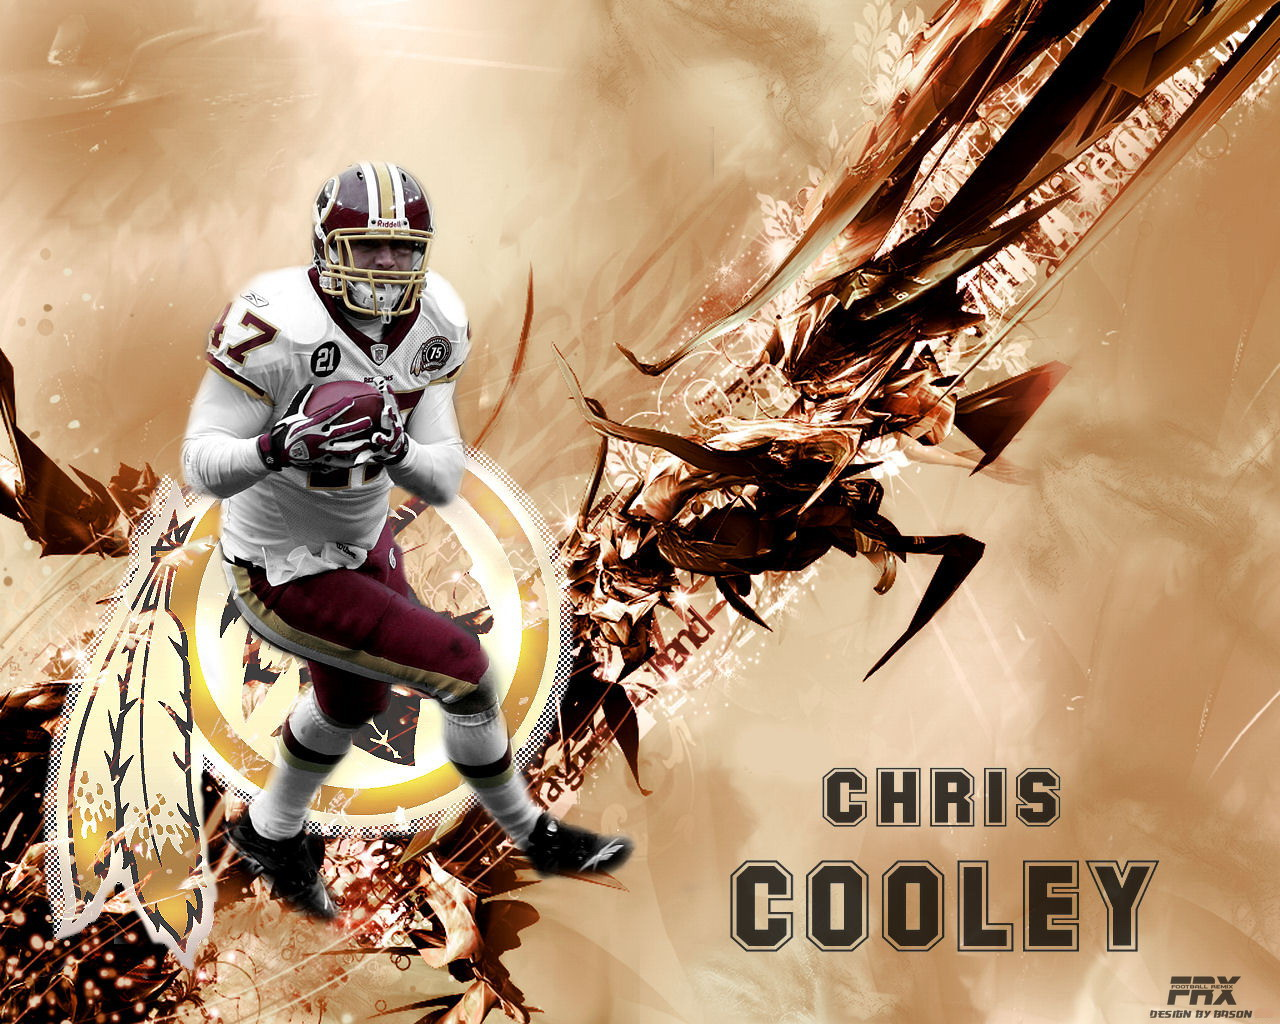 Chris Cooley